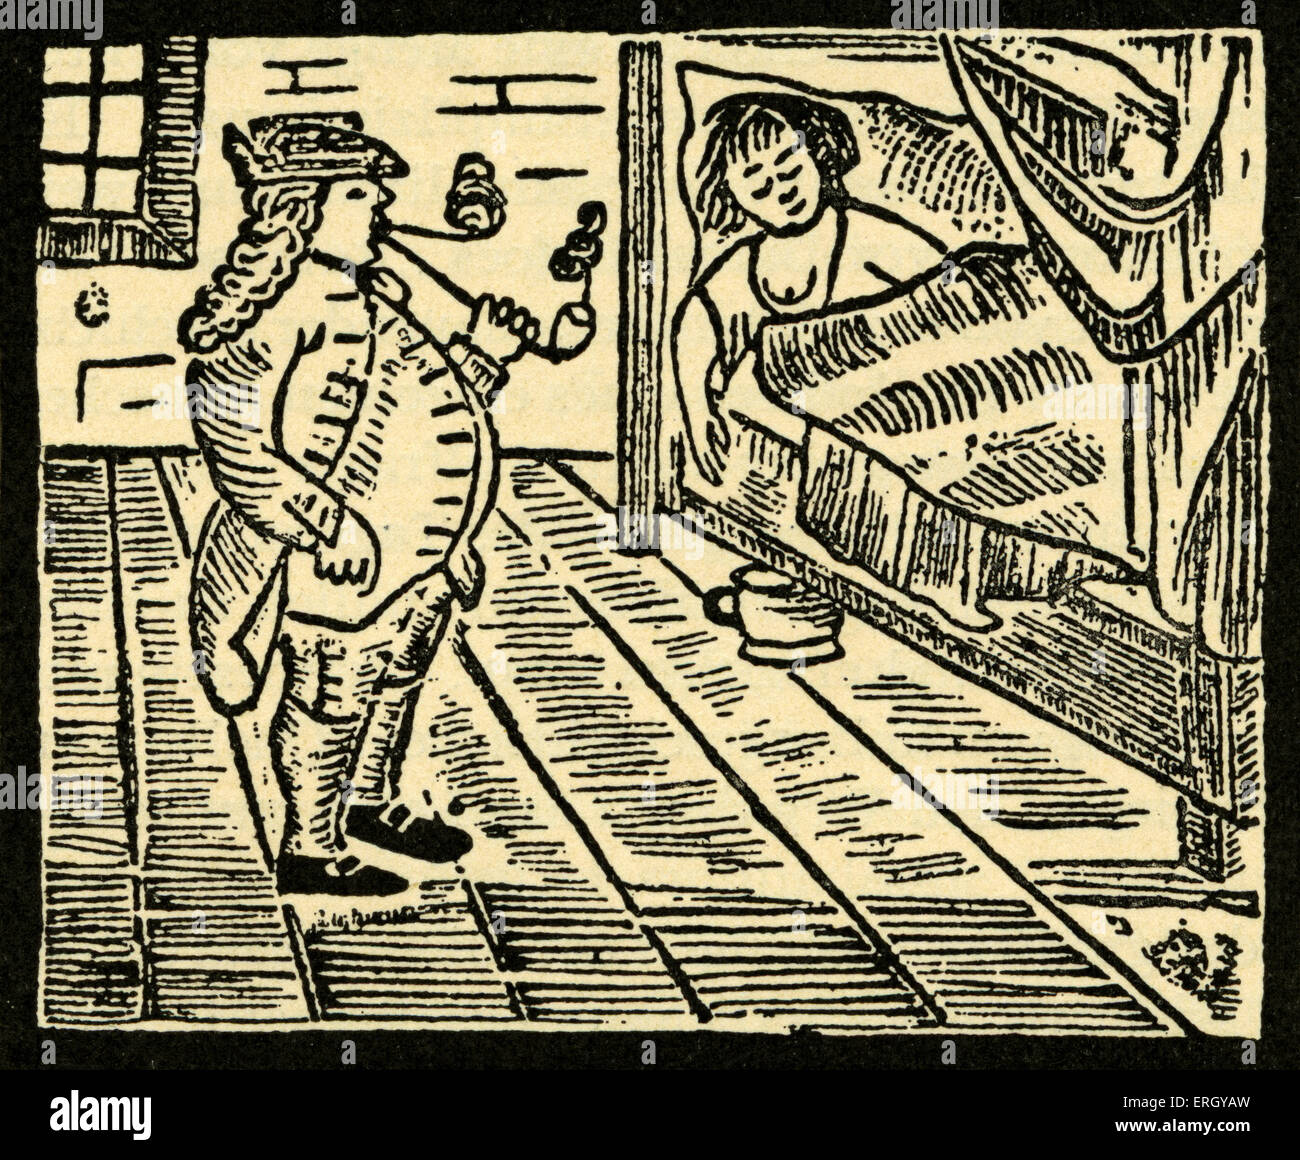 Die Eltern Jobsens / Jobsen's Parents - woodcut from Jobsiade by Carl Arnold Kortum. German physician, writer and Stock Photo